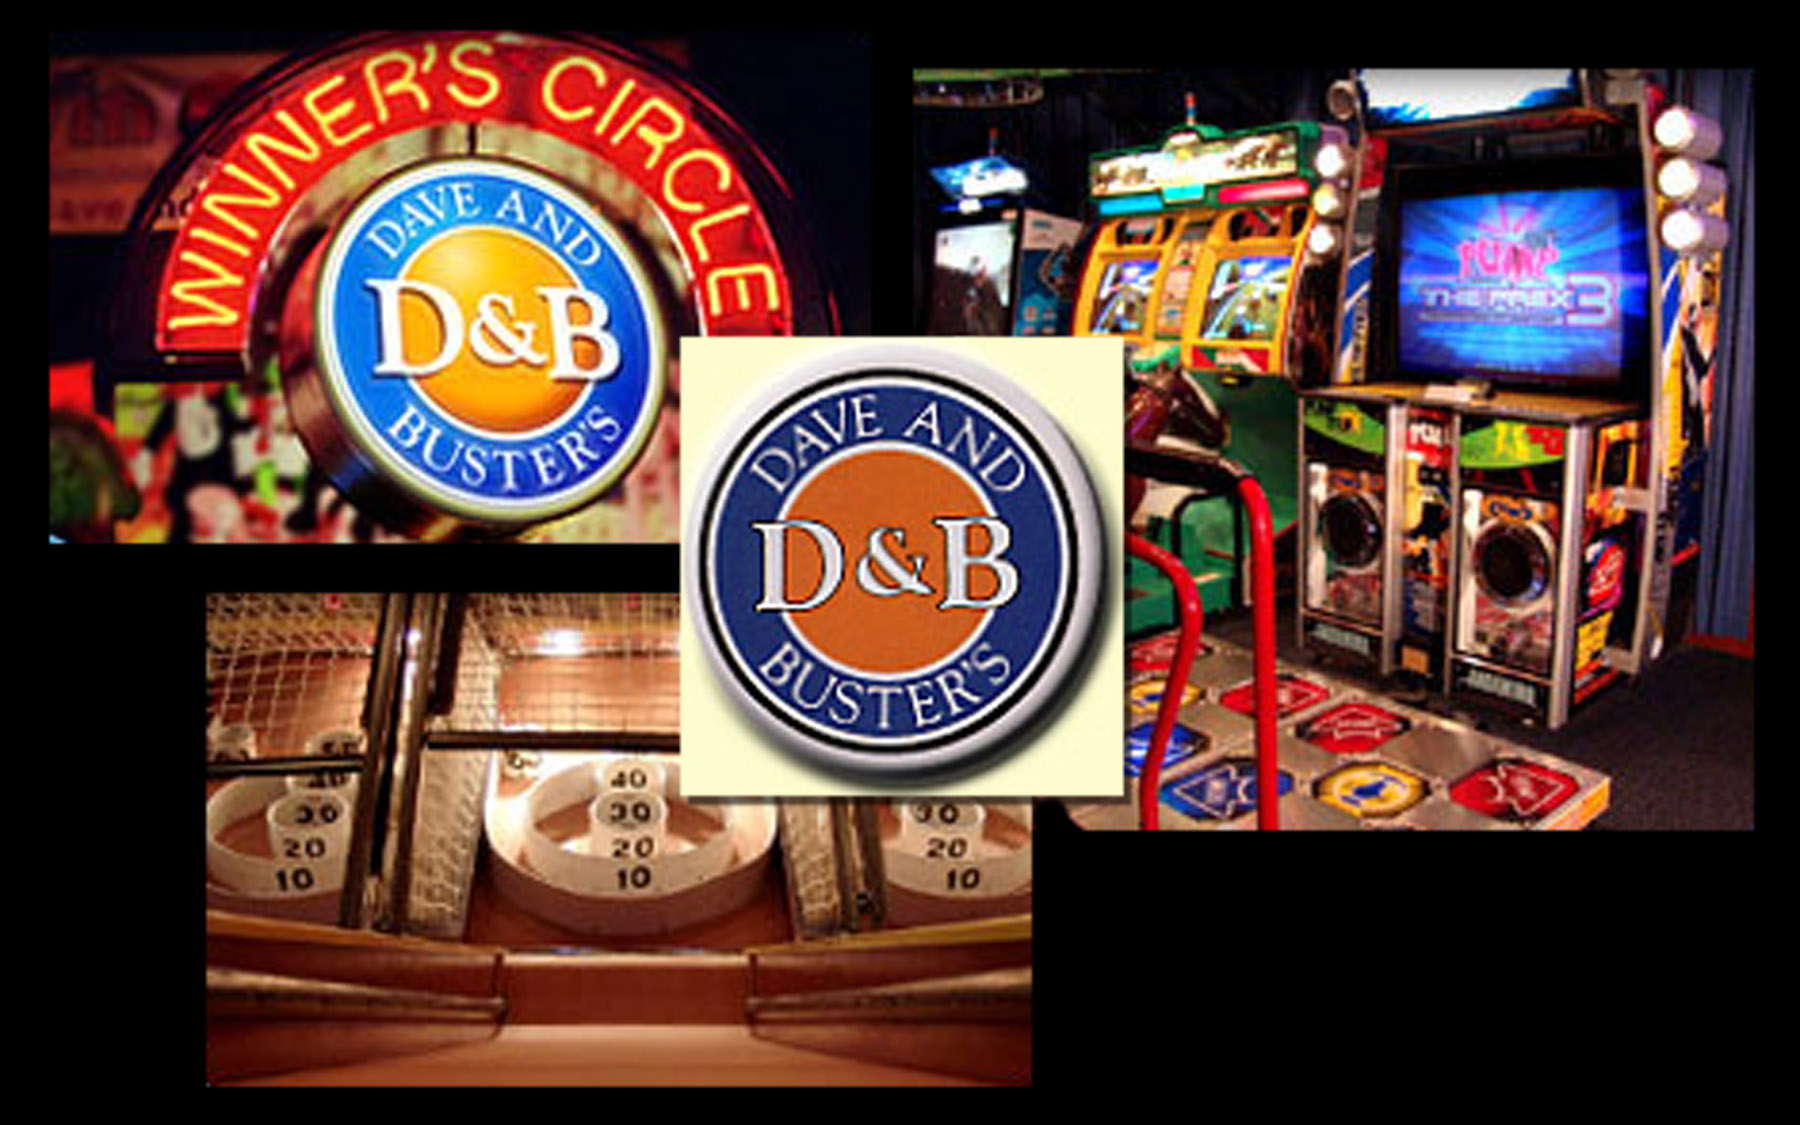 Dave & Buster's in New Orleans, LA